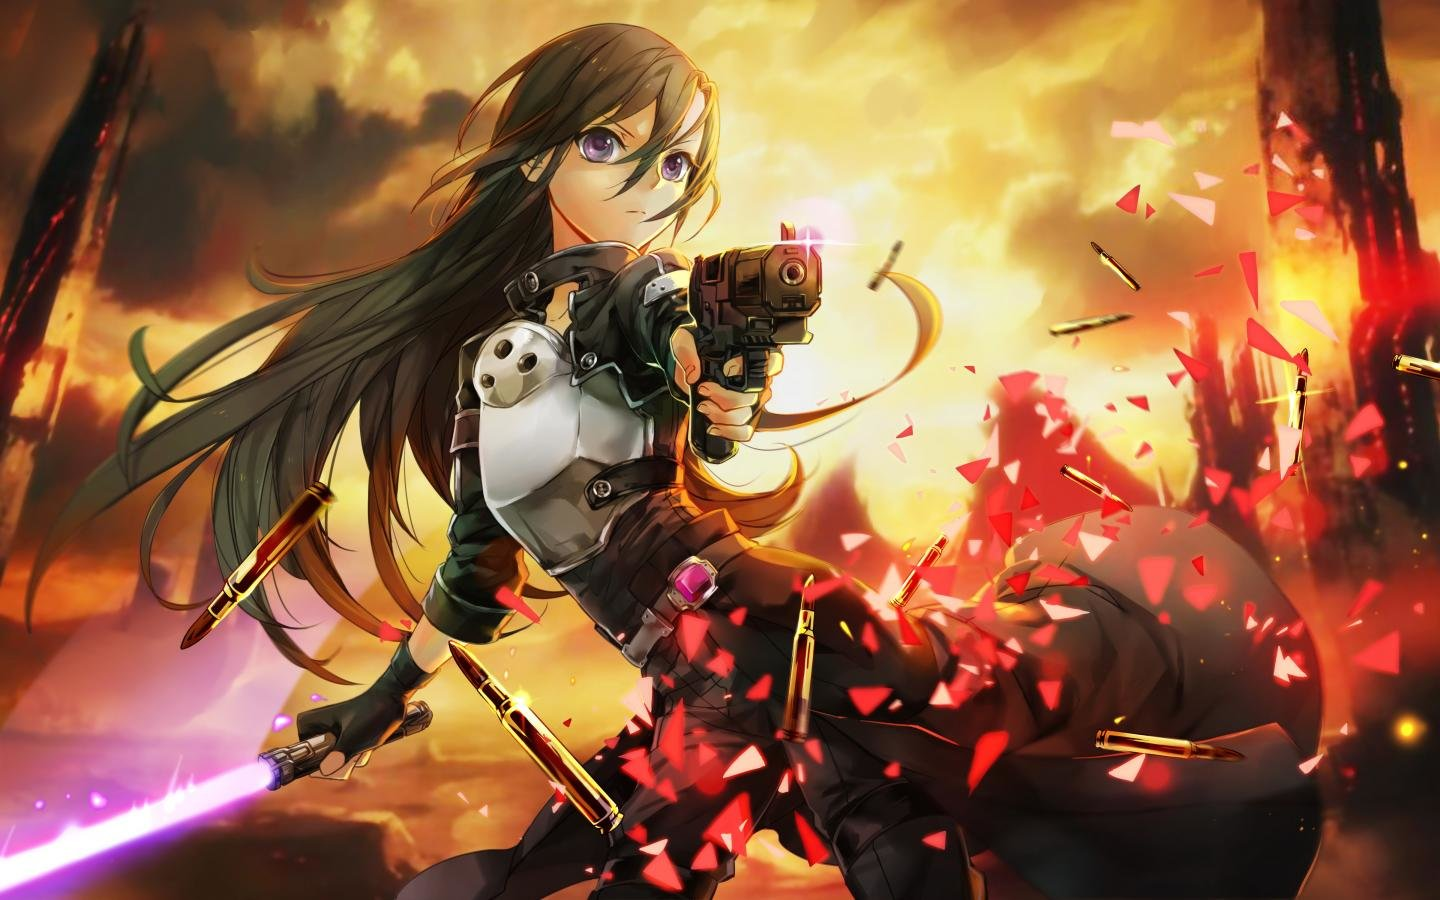 Must see Wallpaper High Quality Sao - sword-art-online-2-ii-background-hd-1440x900-112325  Pictures_468294.jpg